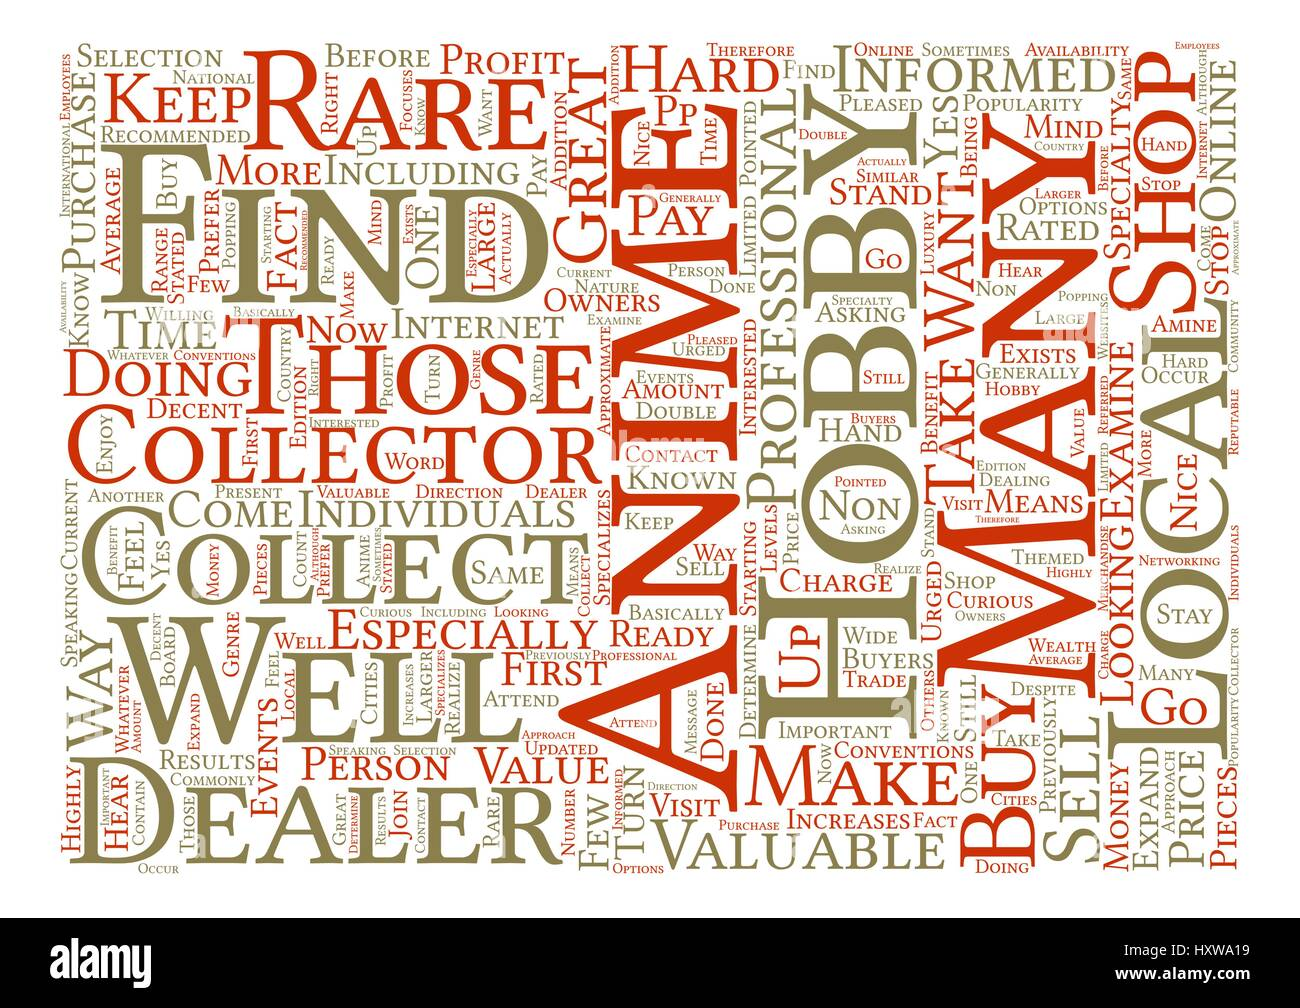 how to find anime dealers text background word cloud concept stock